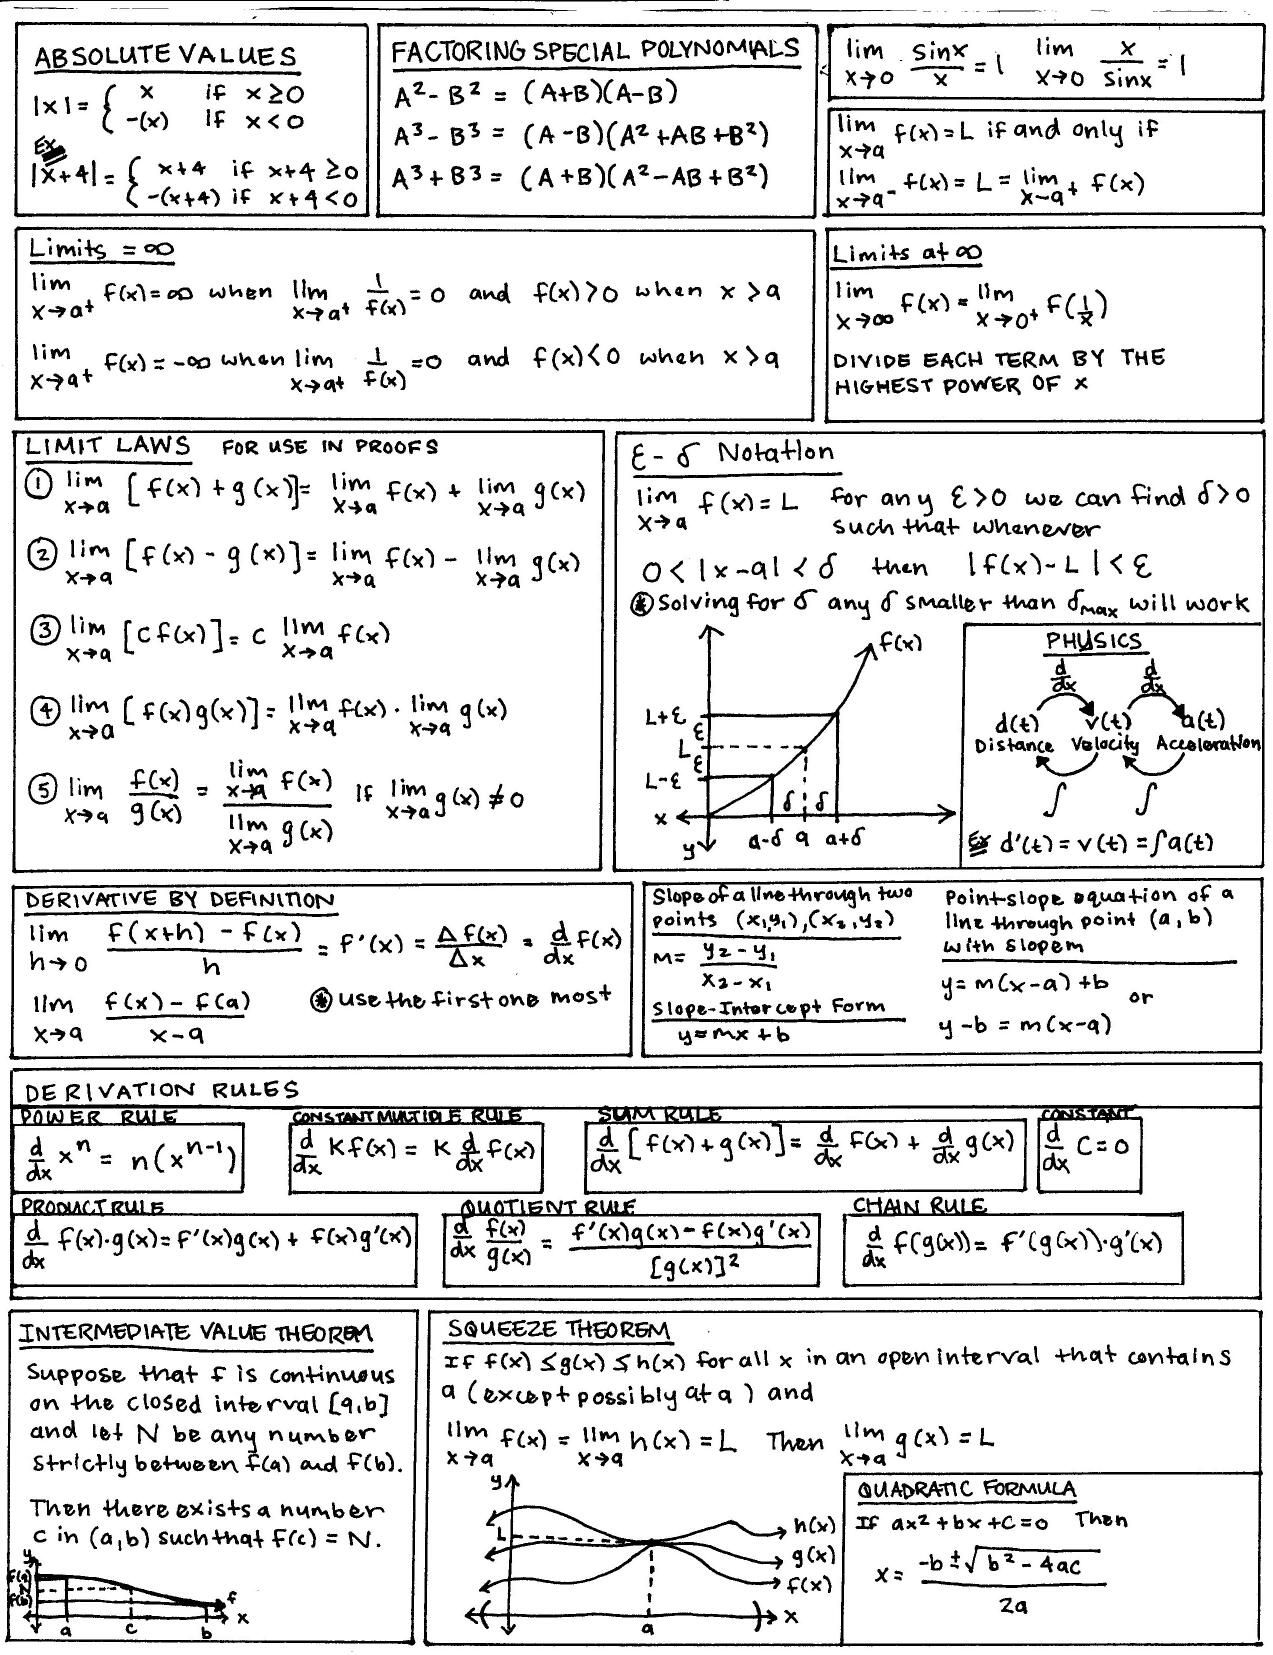 calculus cheat sheet - I made a sheet much like this when re-teaching  myself calculus before grad school & the GACE.